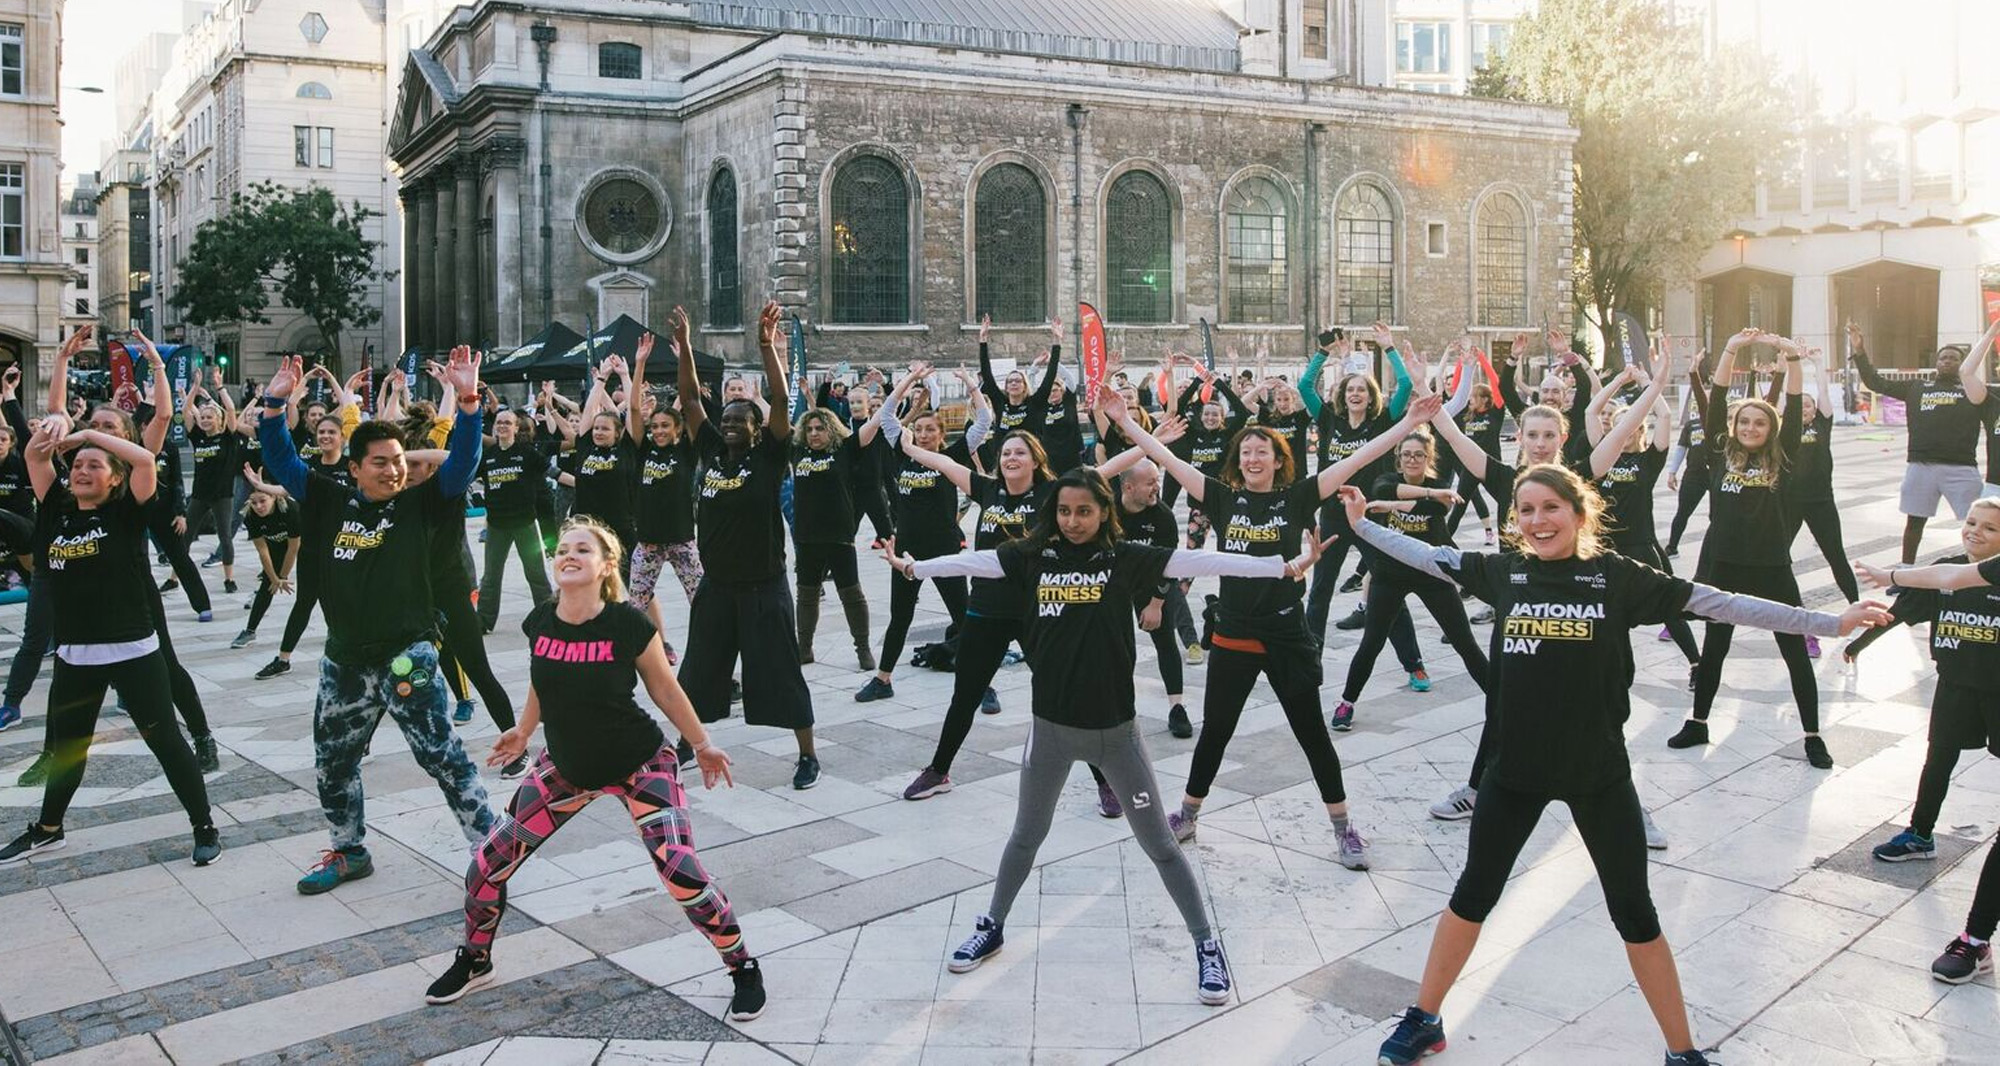 Four million Britons get active as result of milestone National Fitness Day